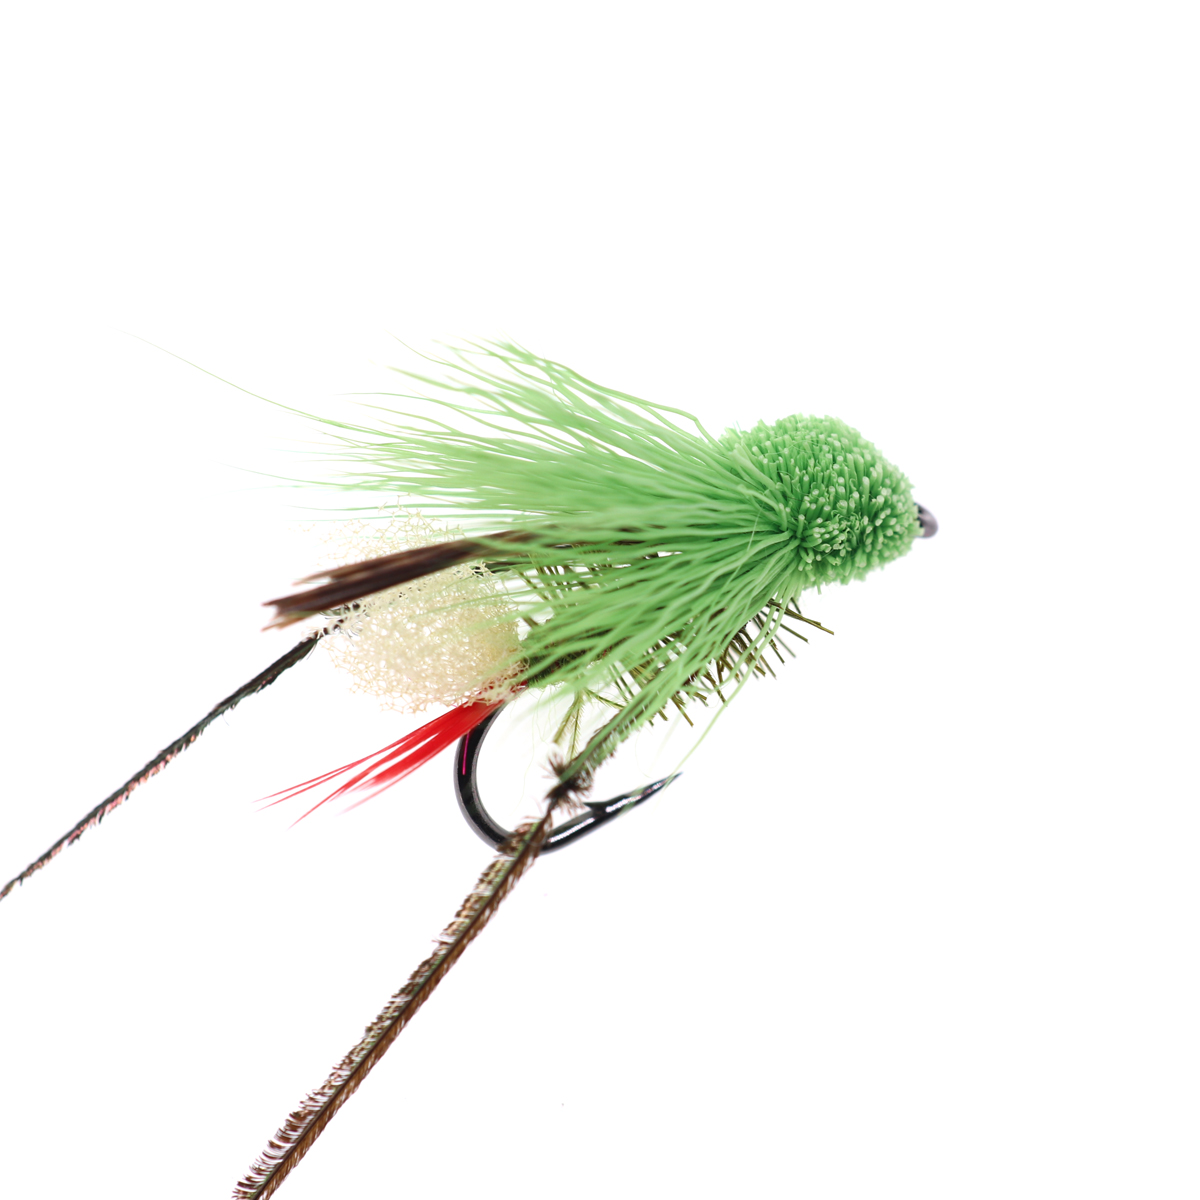 5PCS #10 Trout Fishing Fly Grass Hopper Fly terrestrial Hopper Fly Floating Bass Crappie Bug Bait Artificial Lure 14